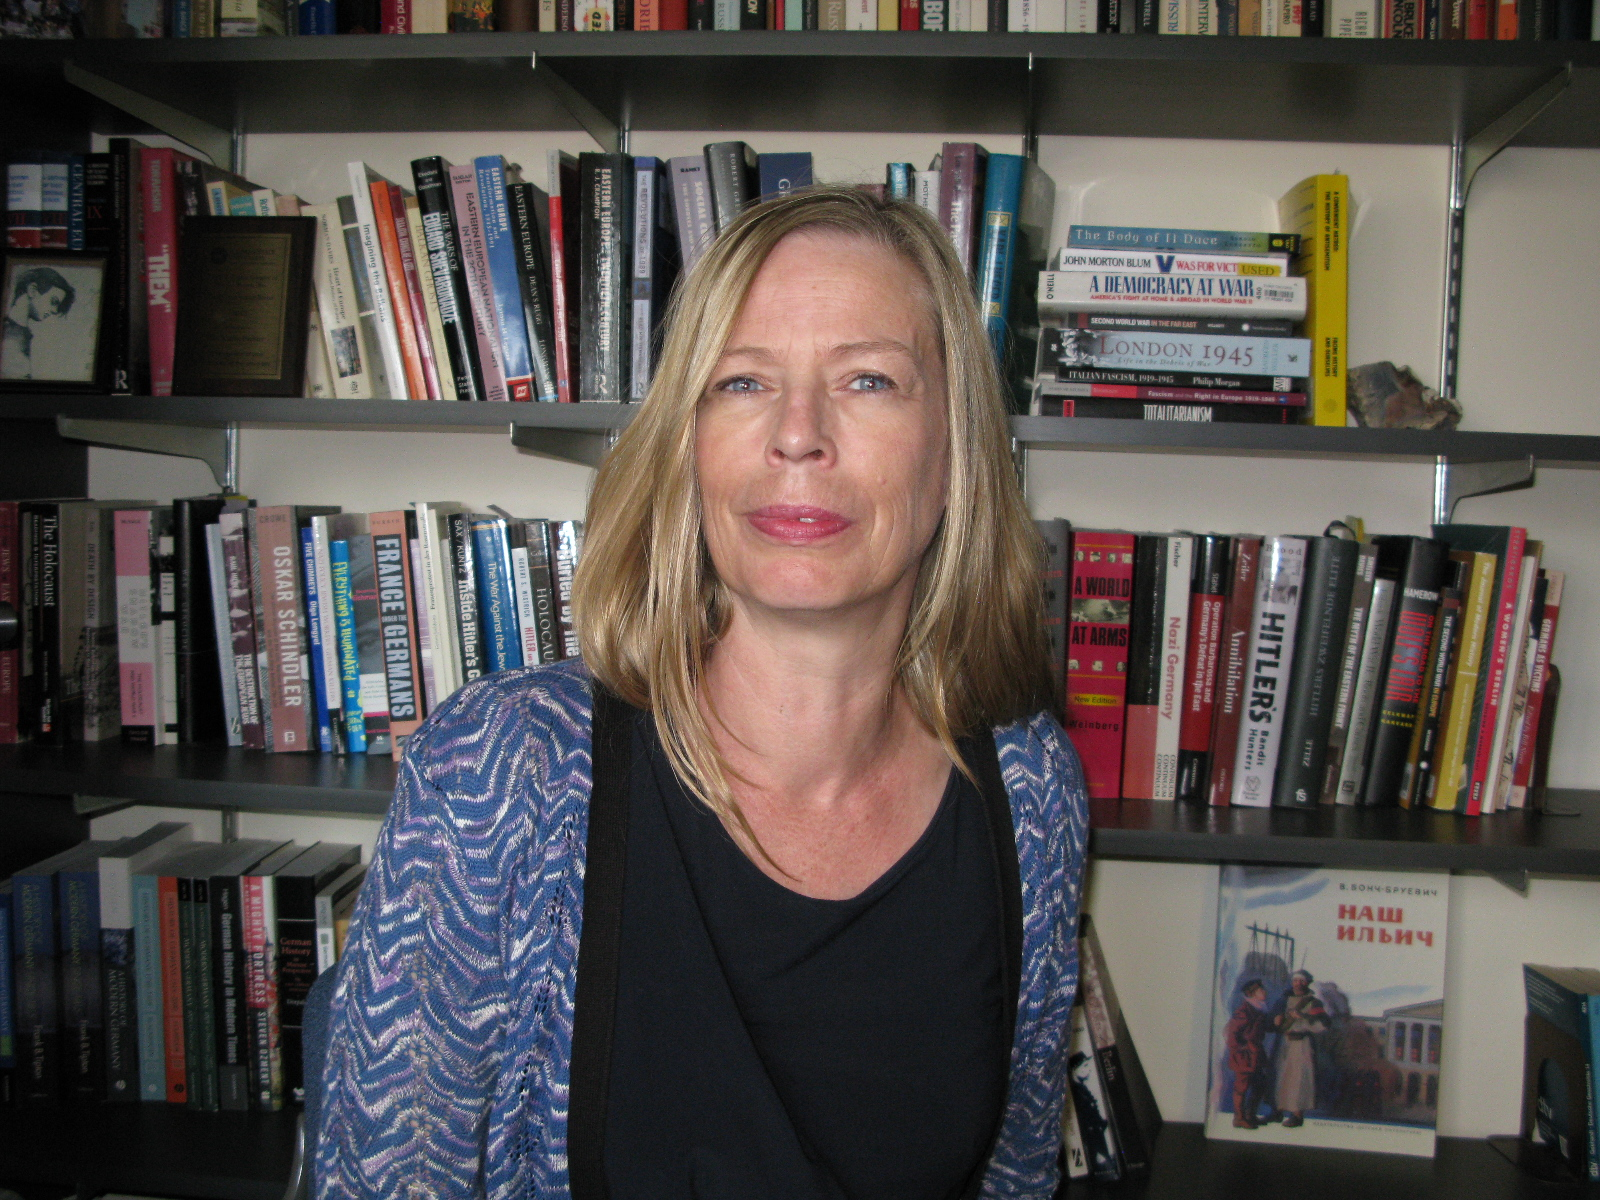 Katrin Paehler in her office, surrounded by books